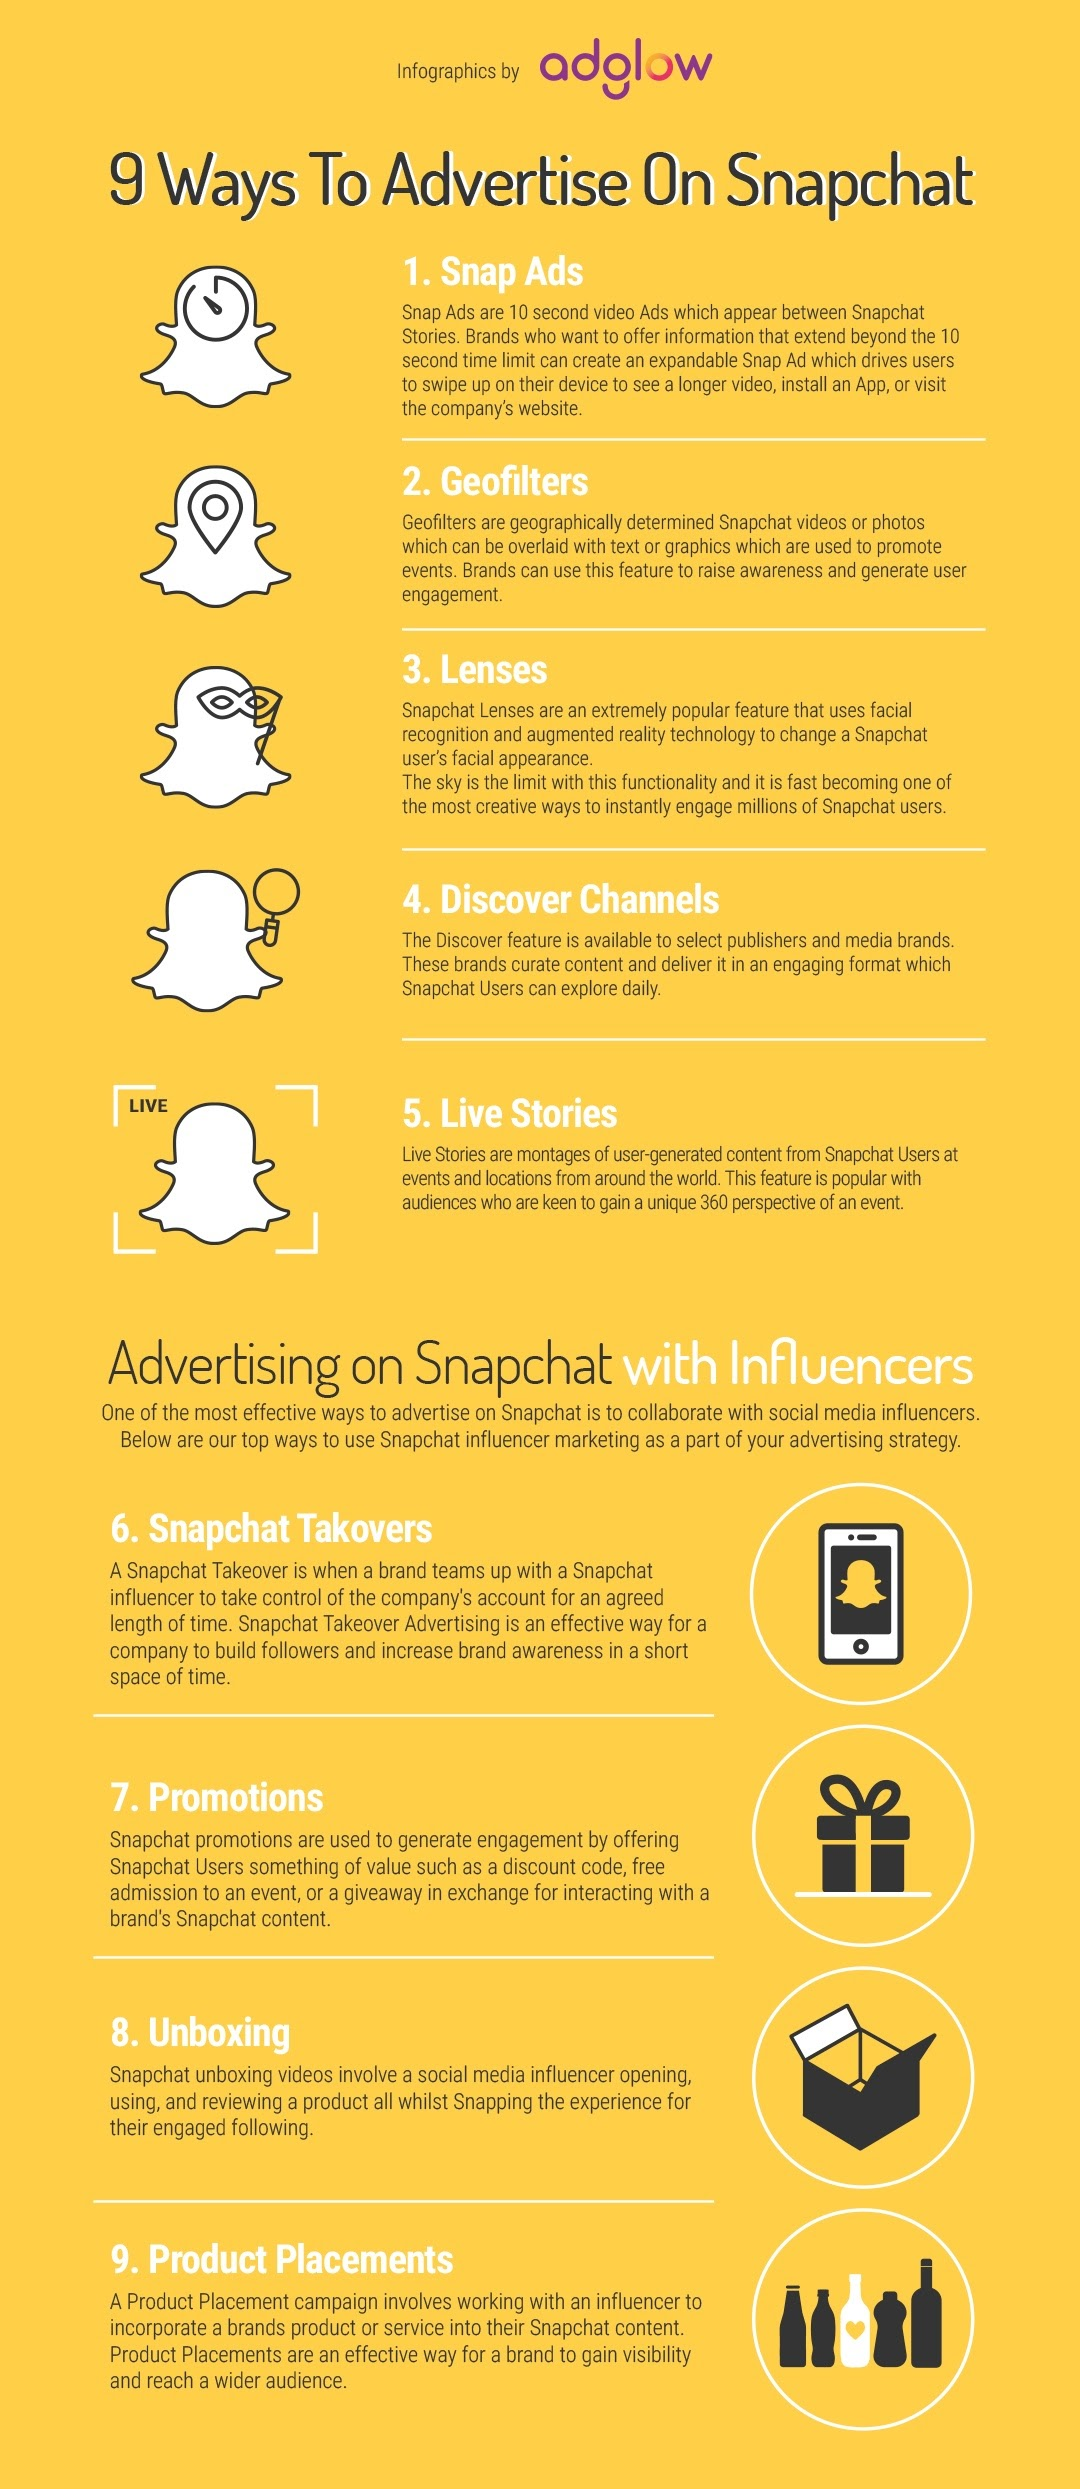 9-ways-to-advertise-on-snapchat-infographic